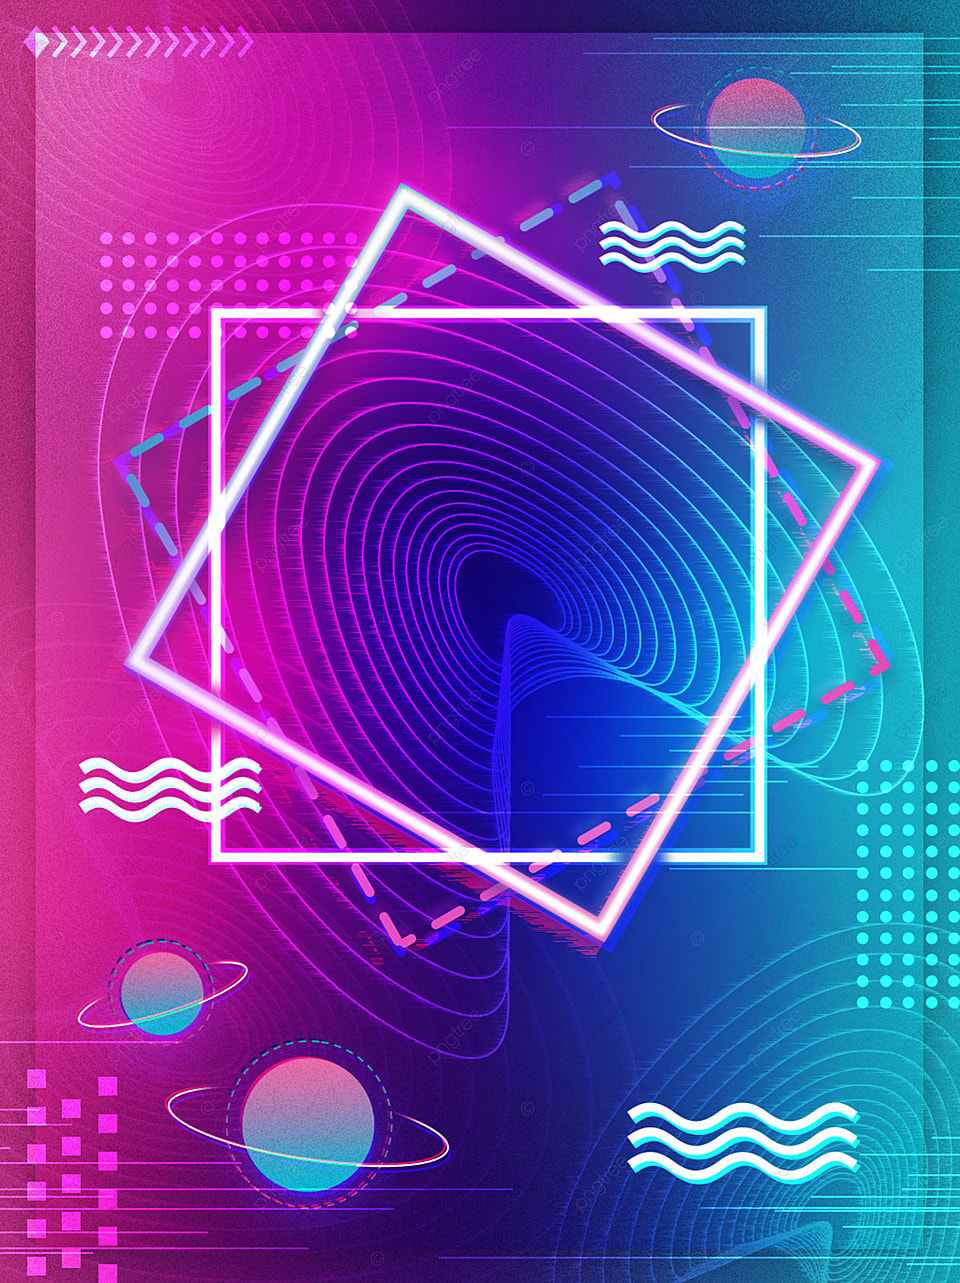 music event poster template background with abstract shapes abstract music music event background image for free download